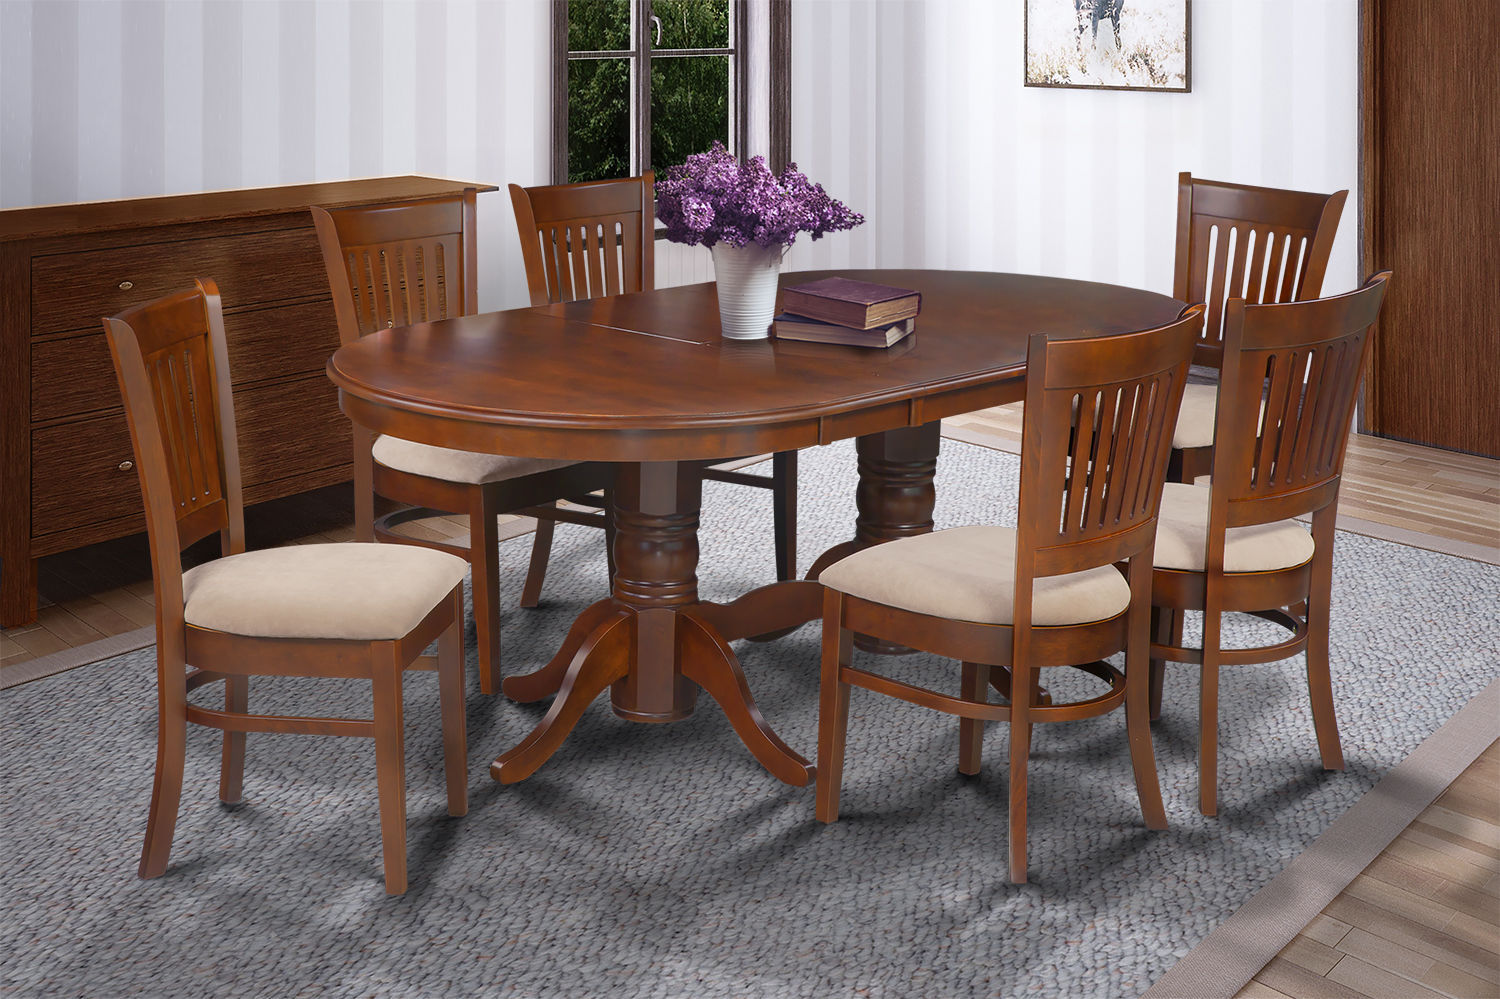 """9 PC  OVAL DINETTE KITCHEN DINING ROOM SET 42""""x78"""" TABLE & 8 CHAIRS IN ESPRESSO"""